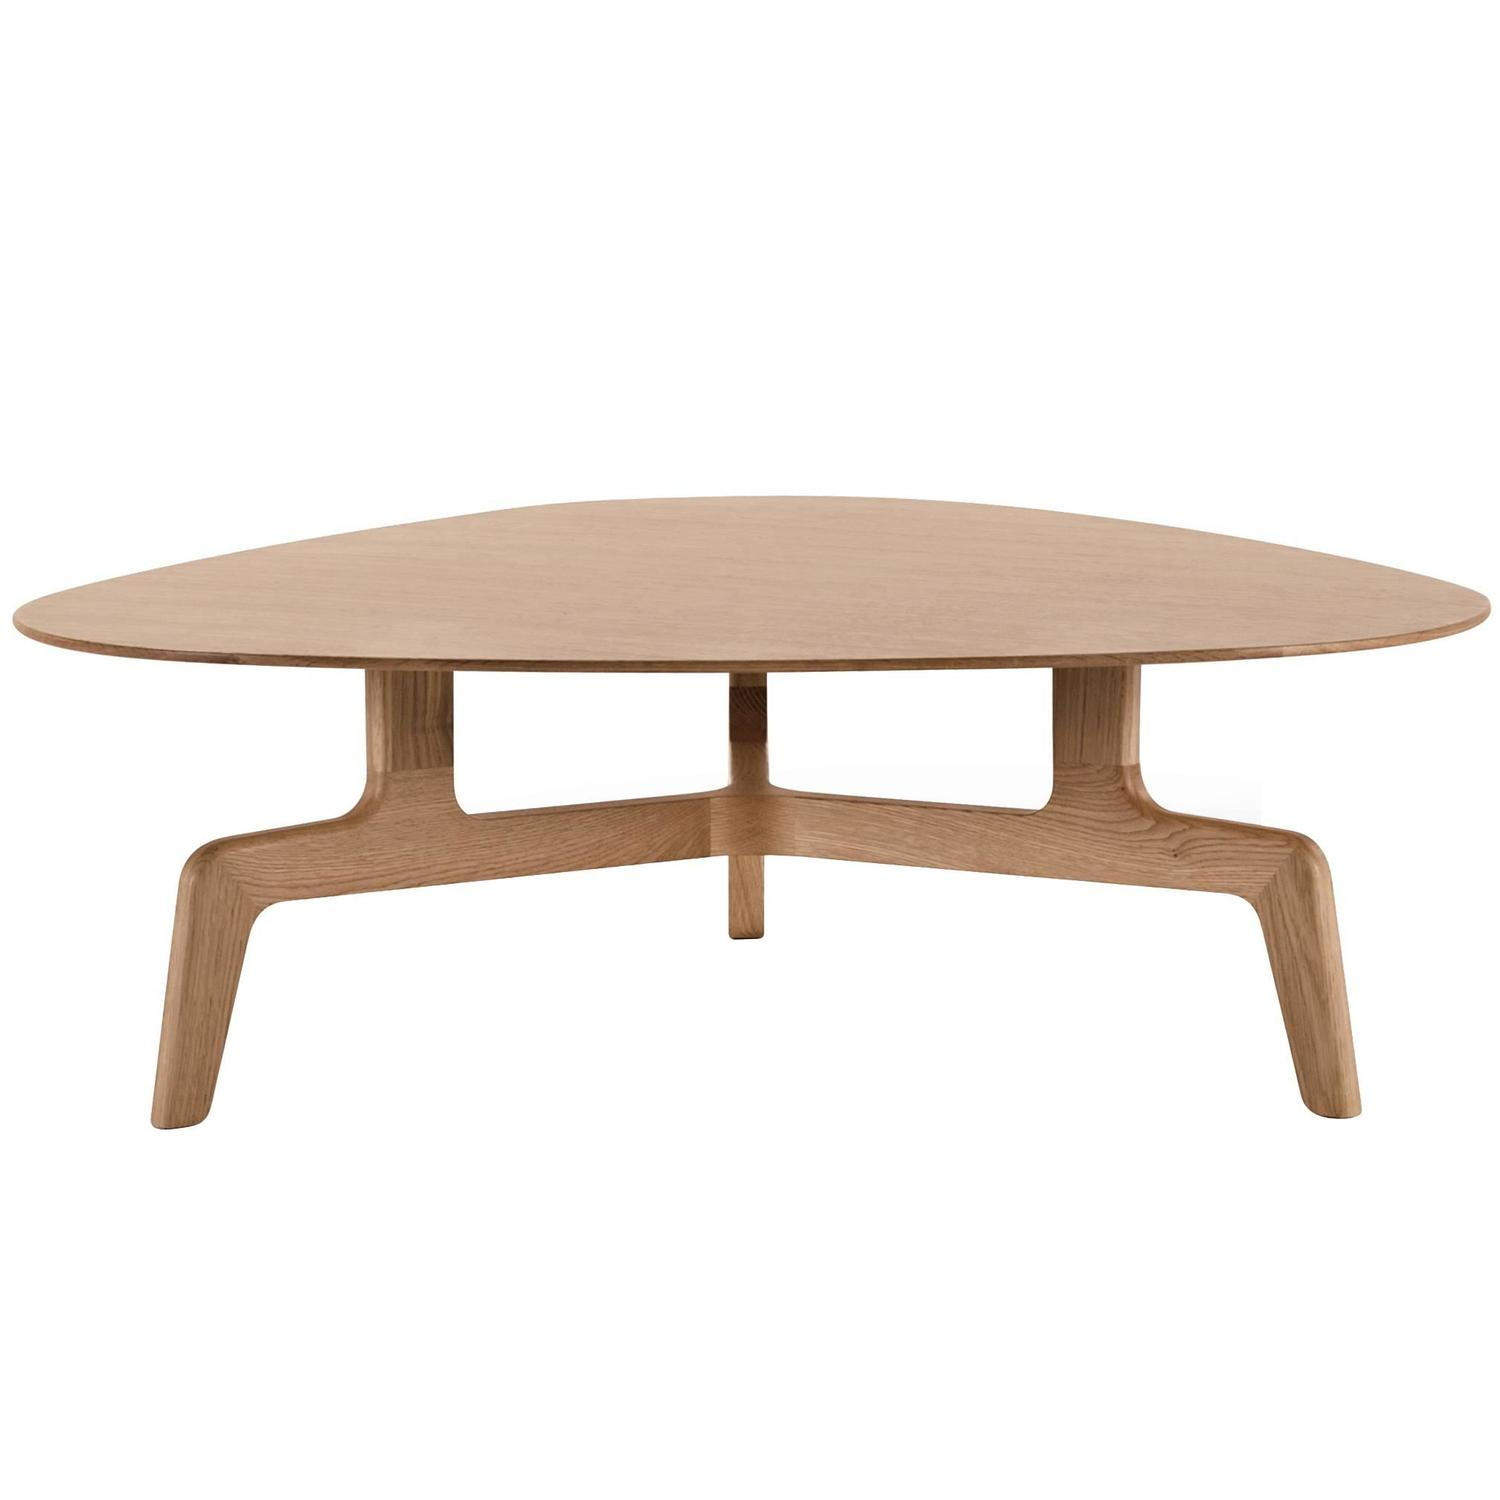 Alias Stabiles Triangular Coffee Table by Alfredo Haberli Italy